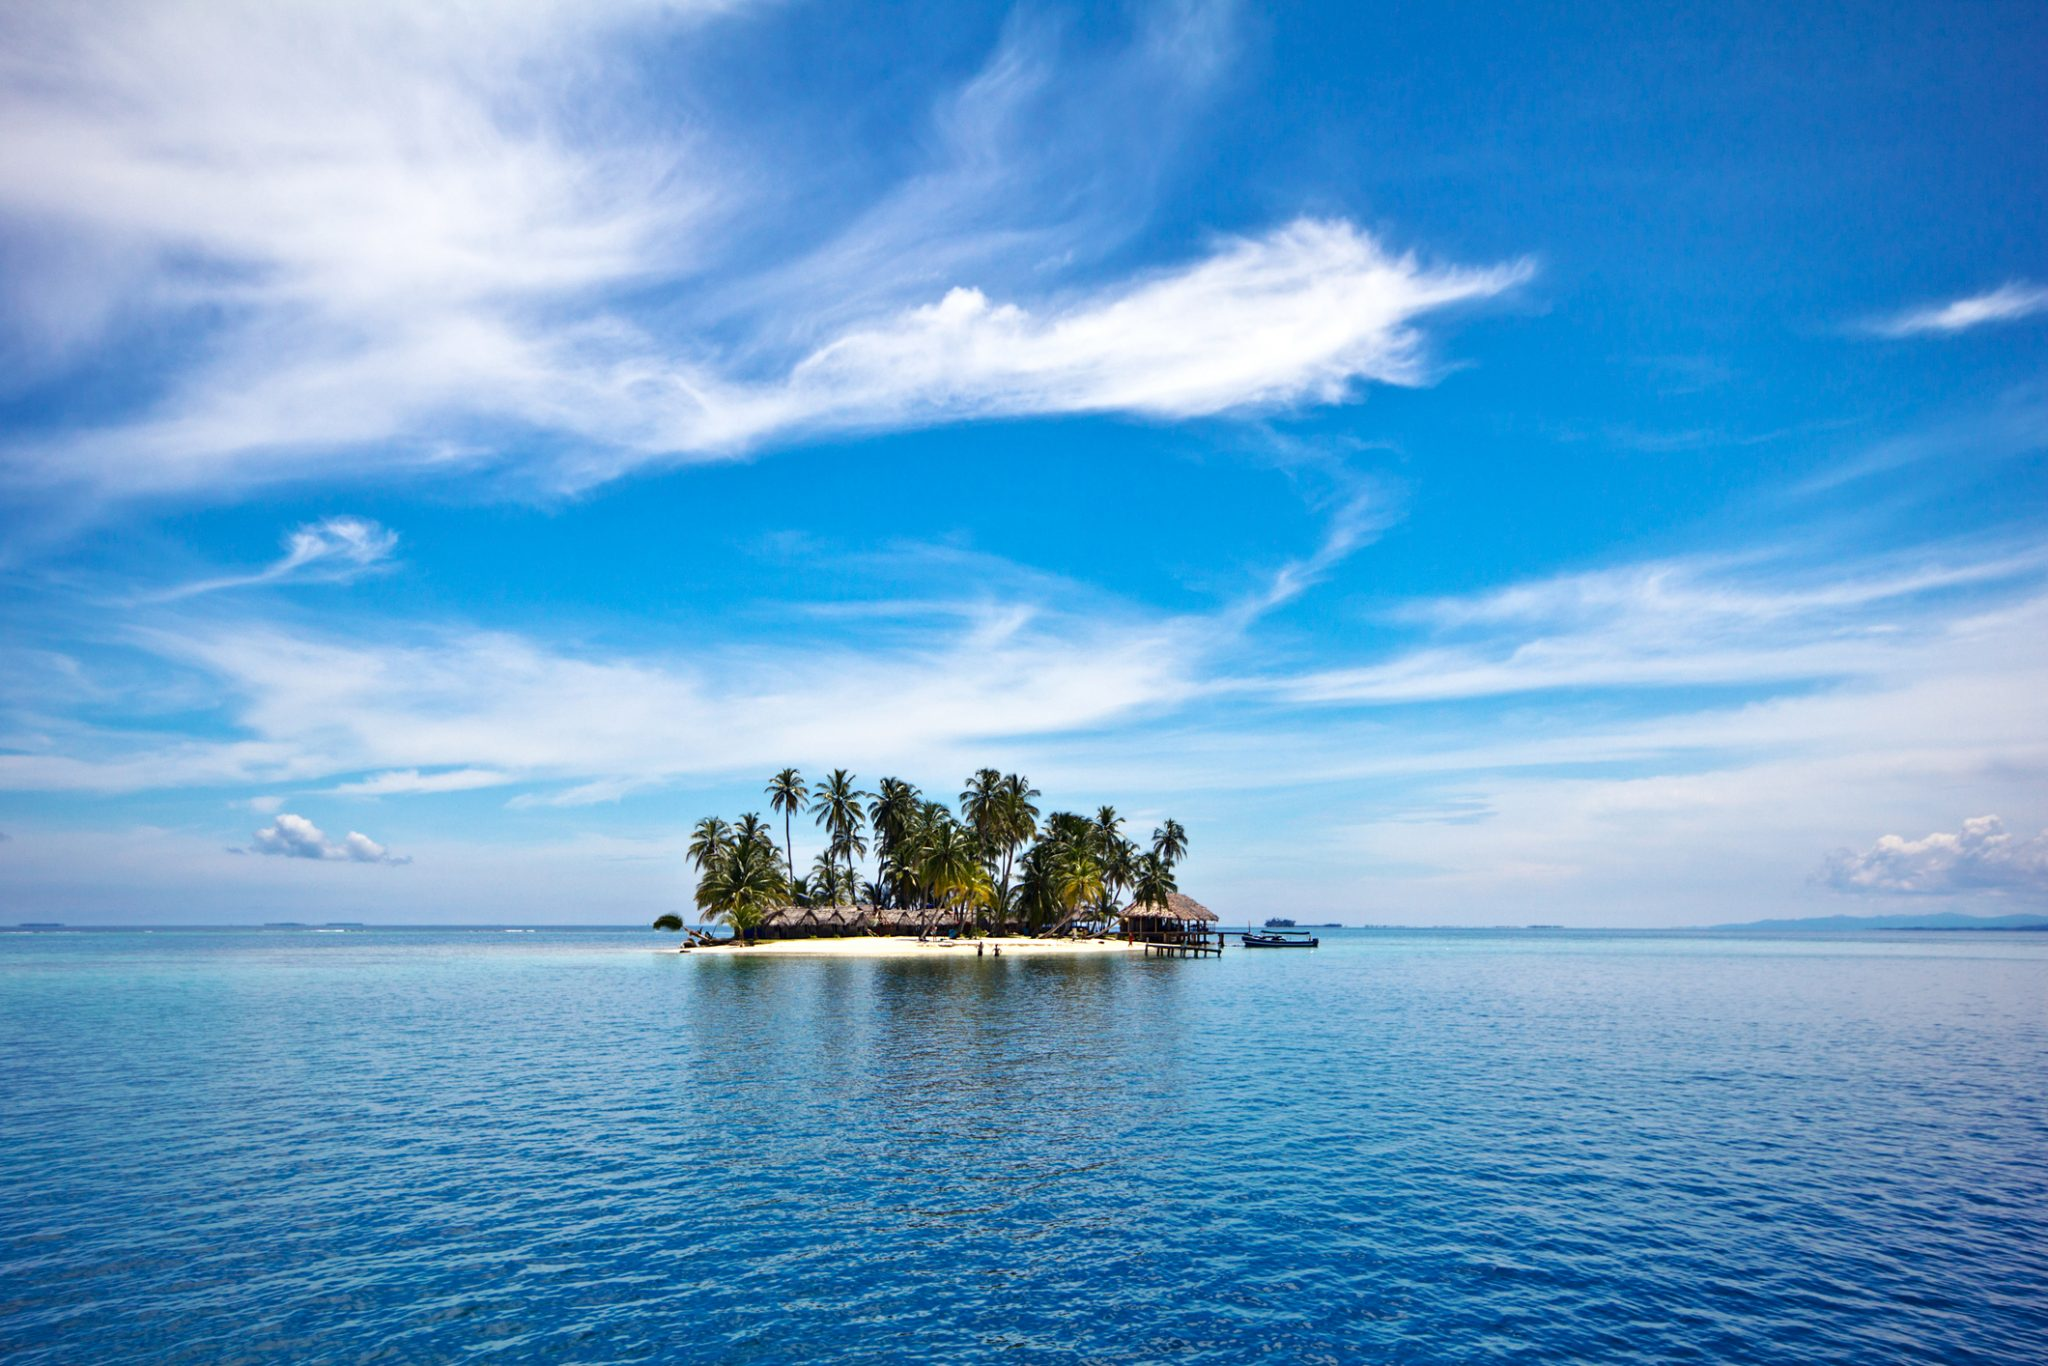 The yacht journey from Panama to Colombia via the San Blas Islands